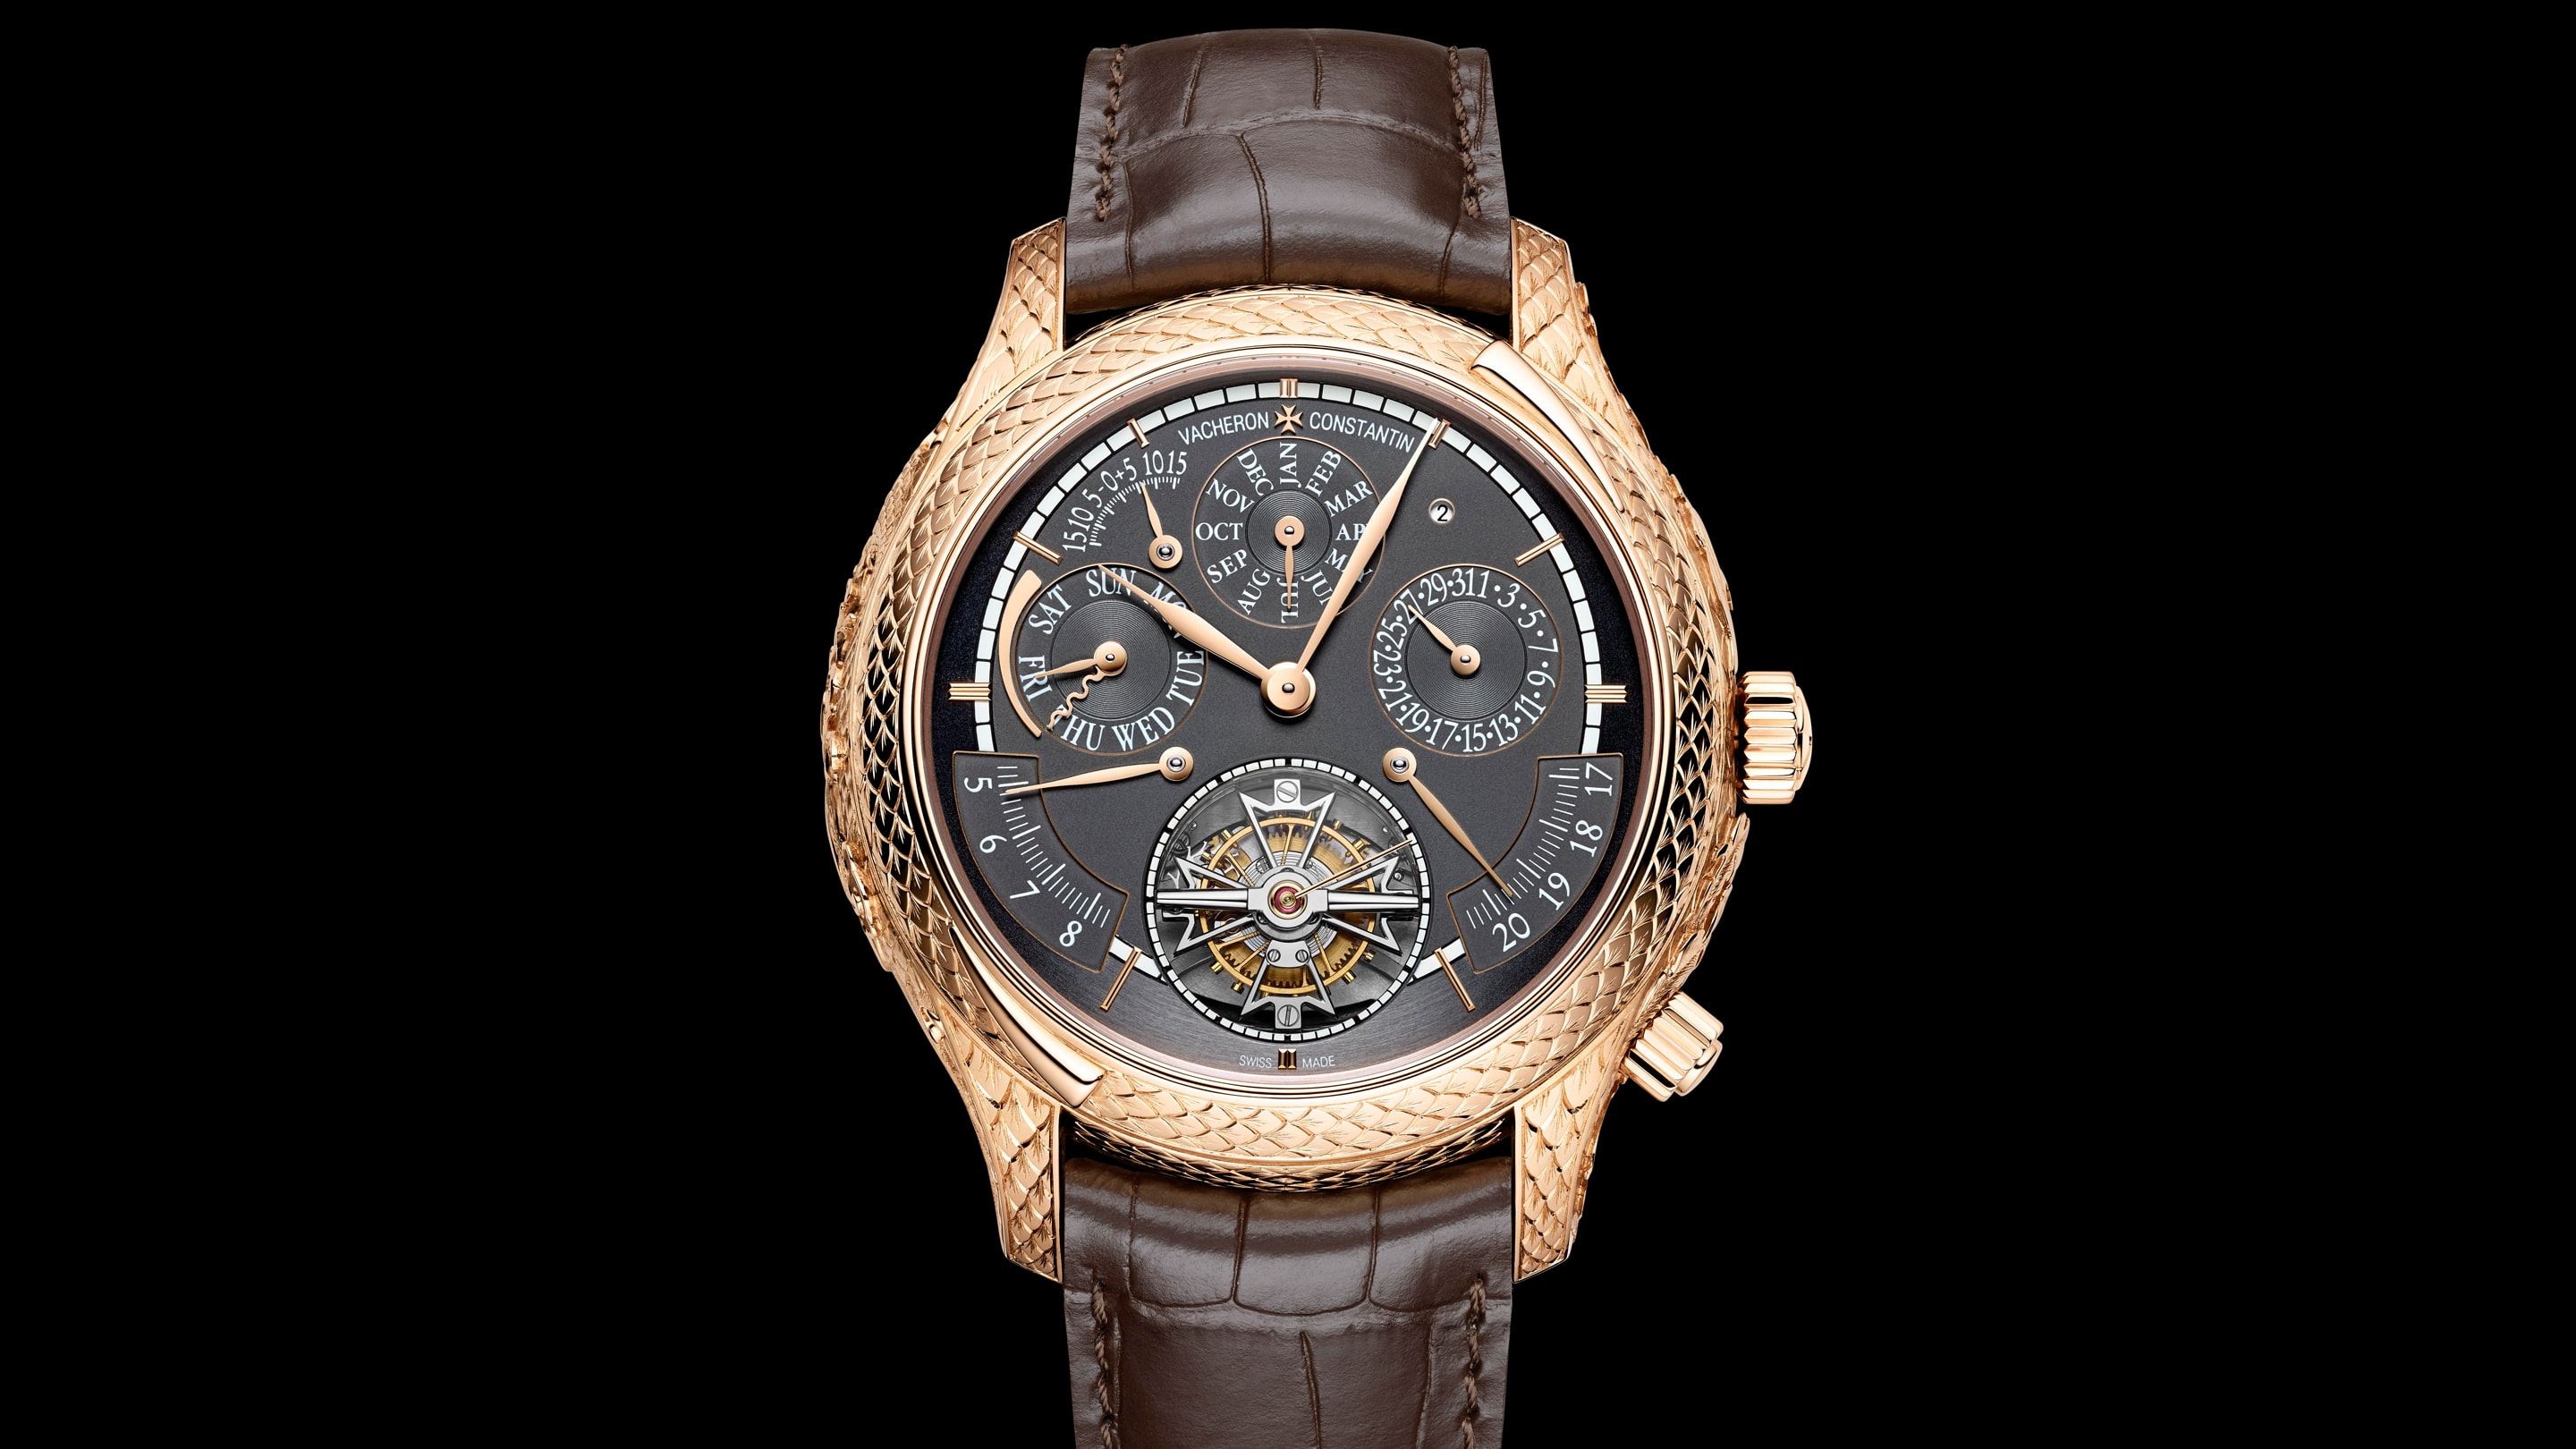 Auto Draft  Introducing: The Vacheron Constantin Les Cabinotiers Grand Complication Phoenix hero